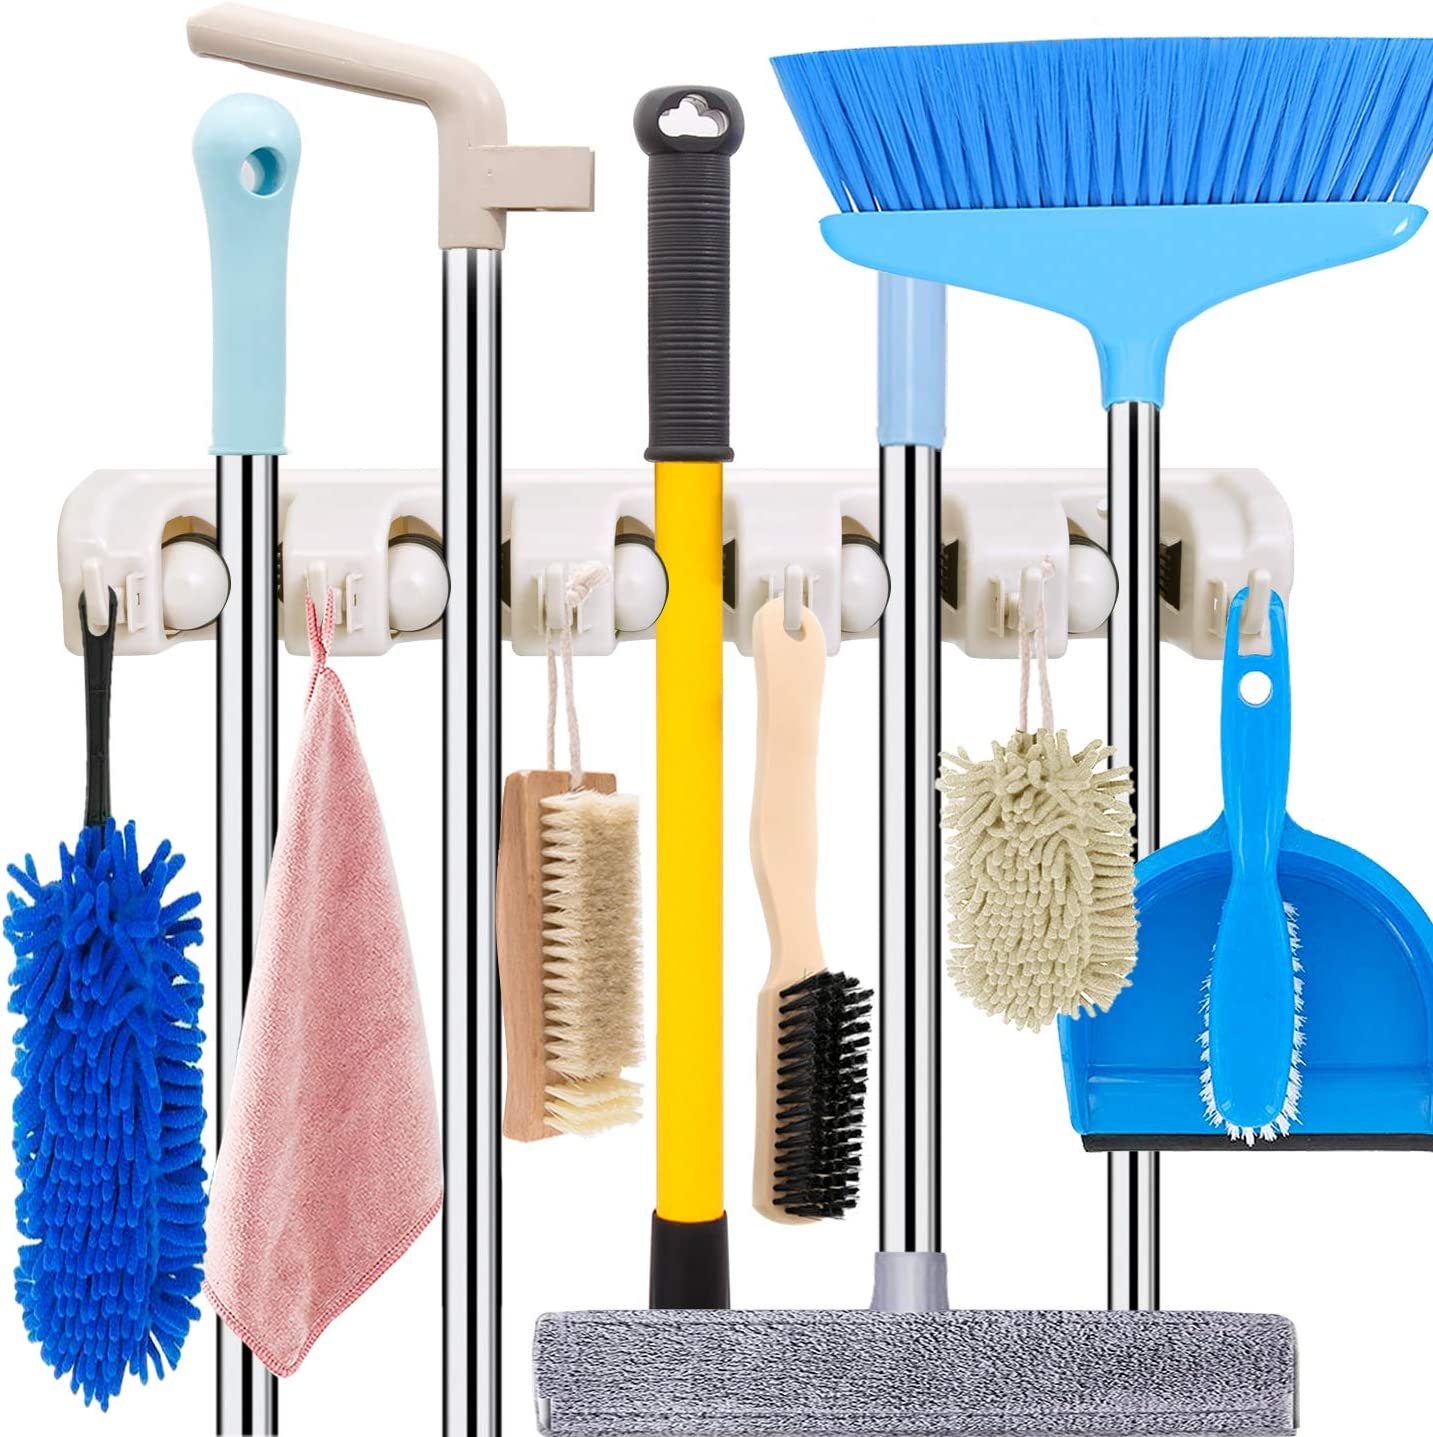 Mop and Broom Holder Wall Mount Heavy Duty Broom Holder Wall Mounted Broom Organizer Home Garden Garage Storage Rack 5 Position with 6 Hooks